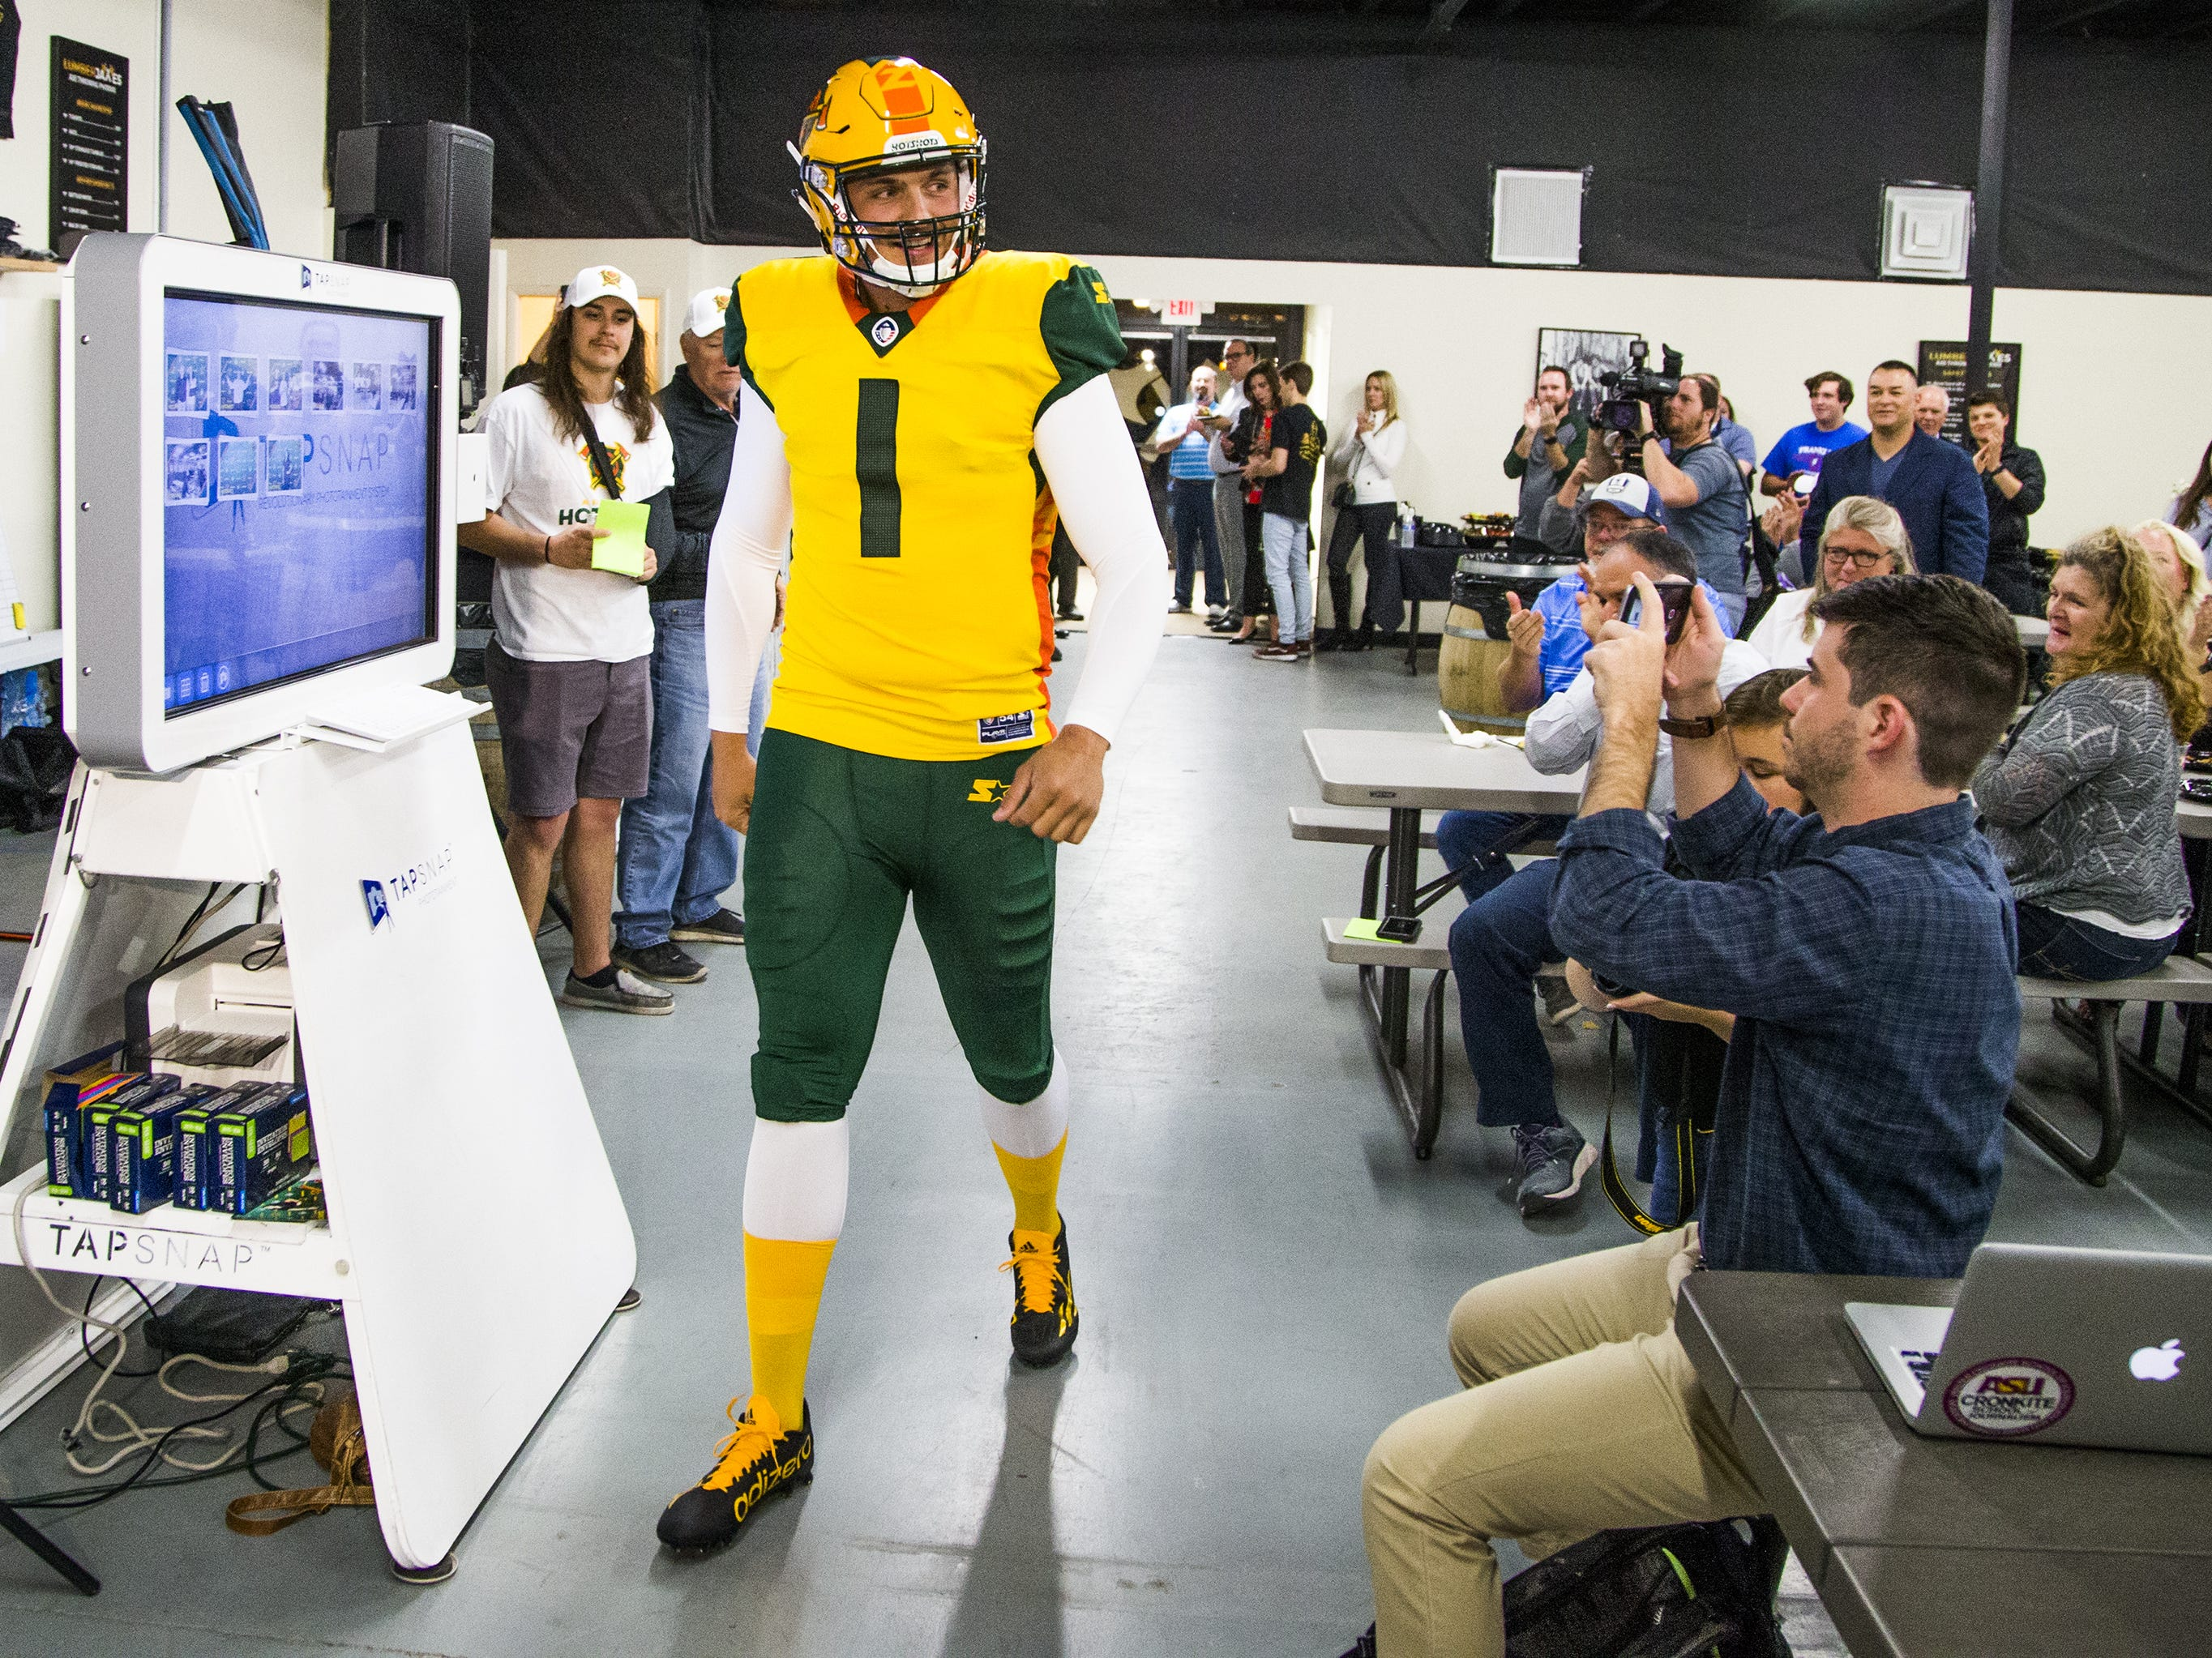 Nick Dooley, a longsnapper, unveils the new uniform for the Arizona Hotshots professional football team at an event at Lumberjaxes in Tempe, Tuesday, November 27, 2018.